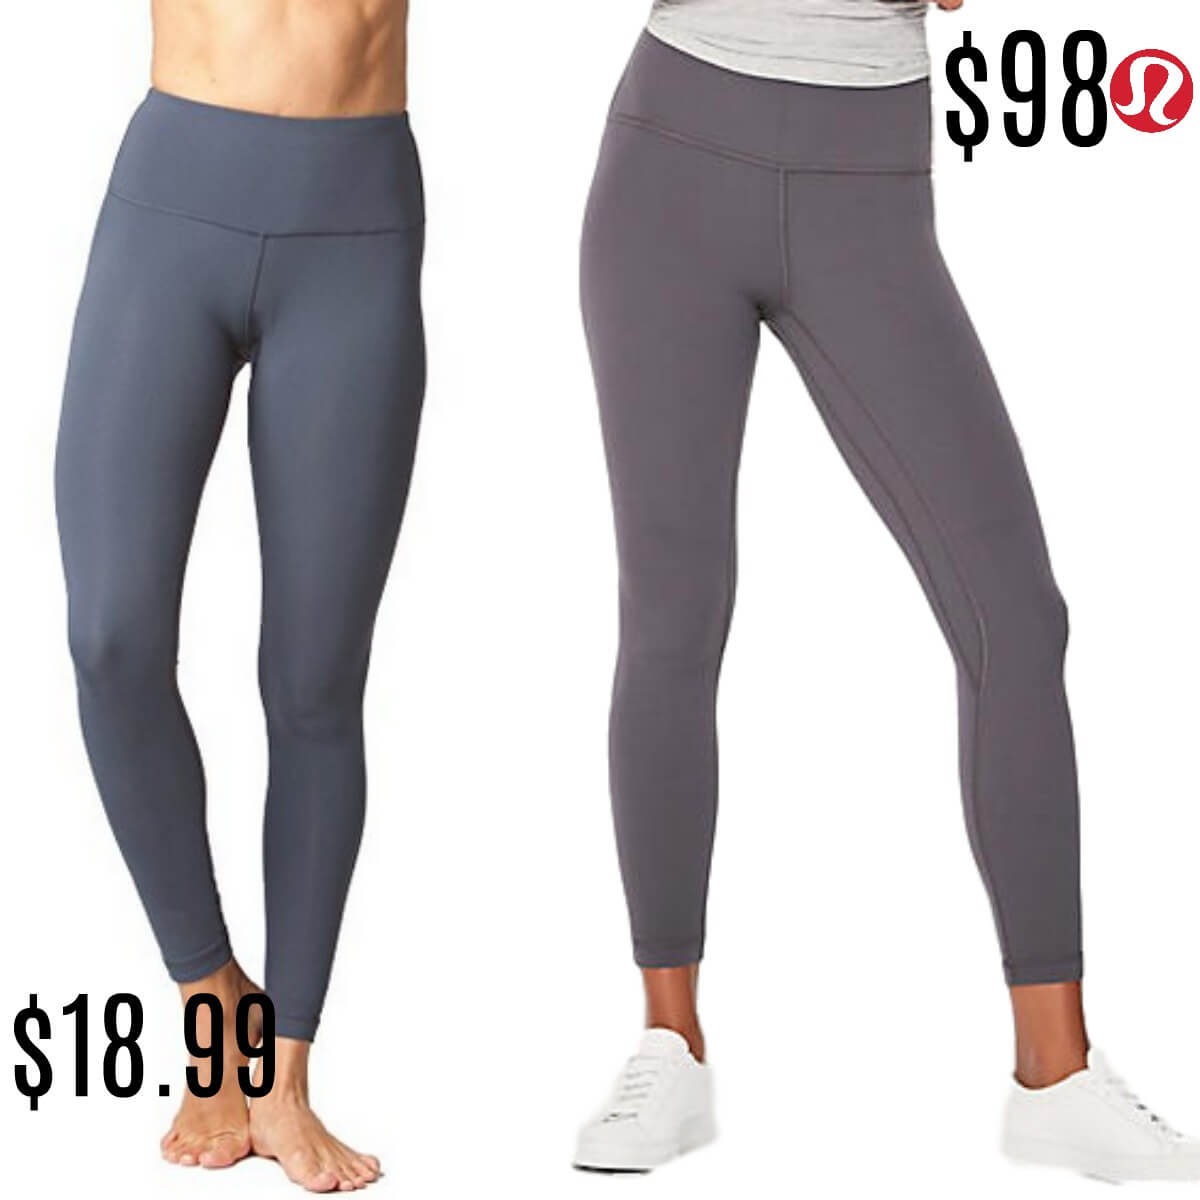 0be5d1496 They are buttery soft and SO SO comfortable – so how was I going to find  something that compared to these  98 leggings. Don t you worry – I FOUND  SOMETHING ...